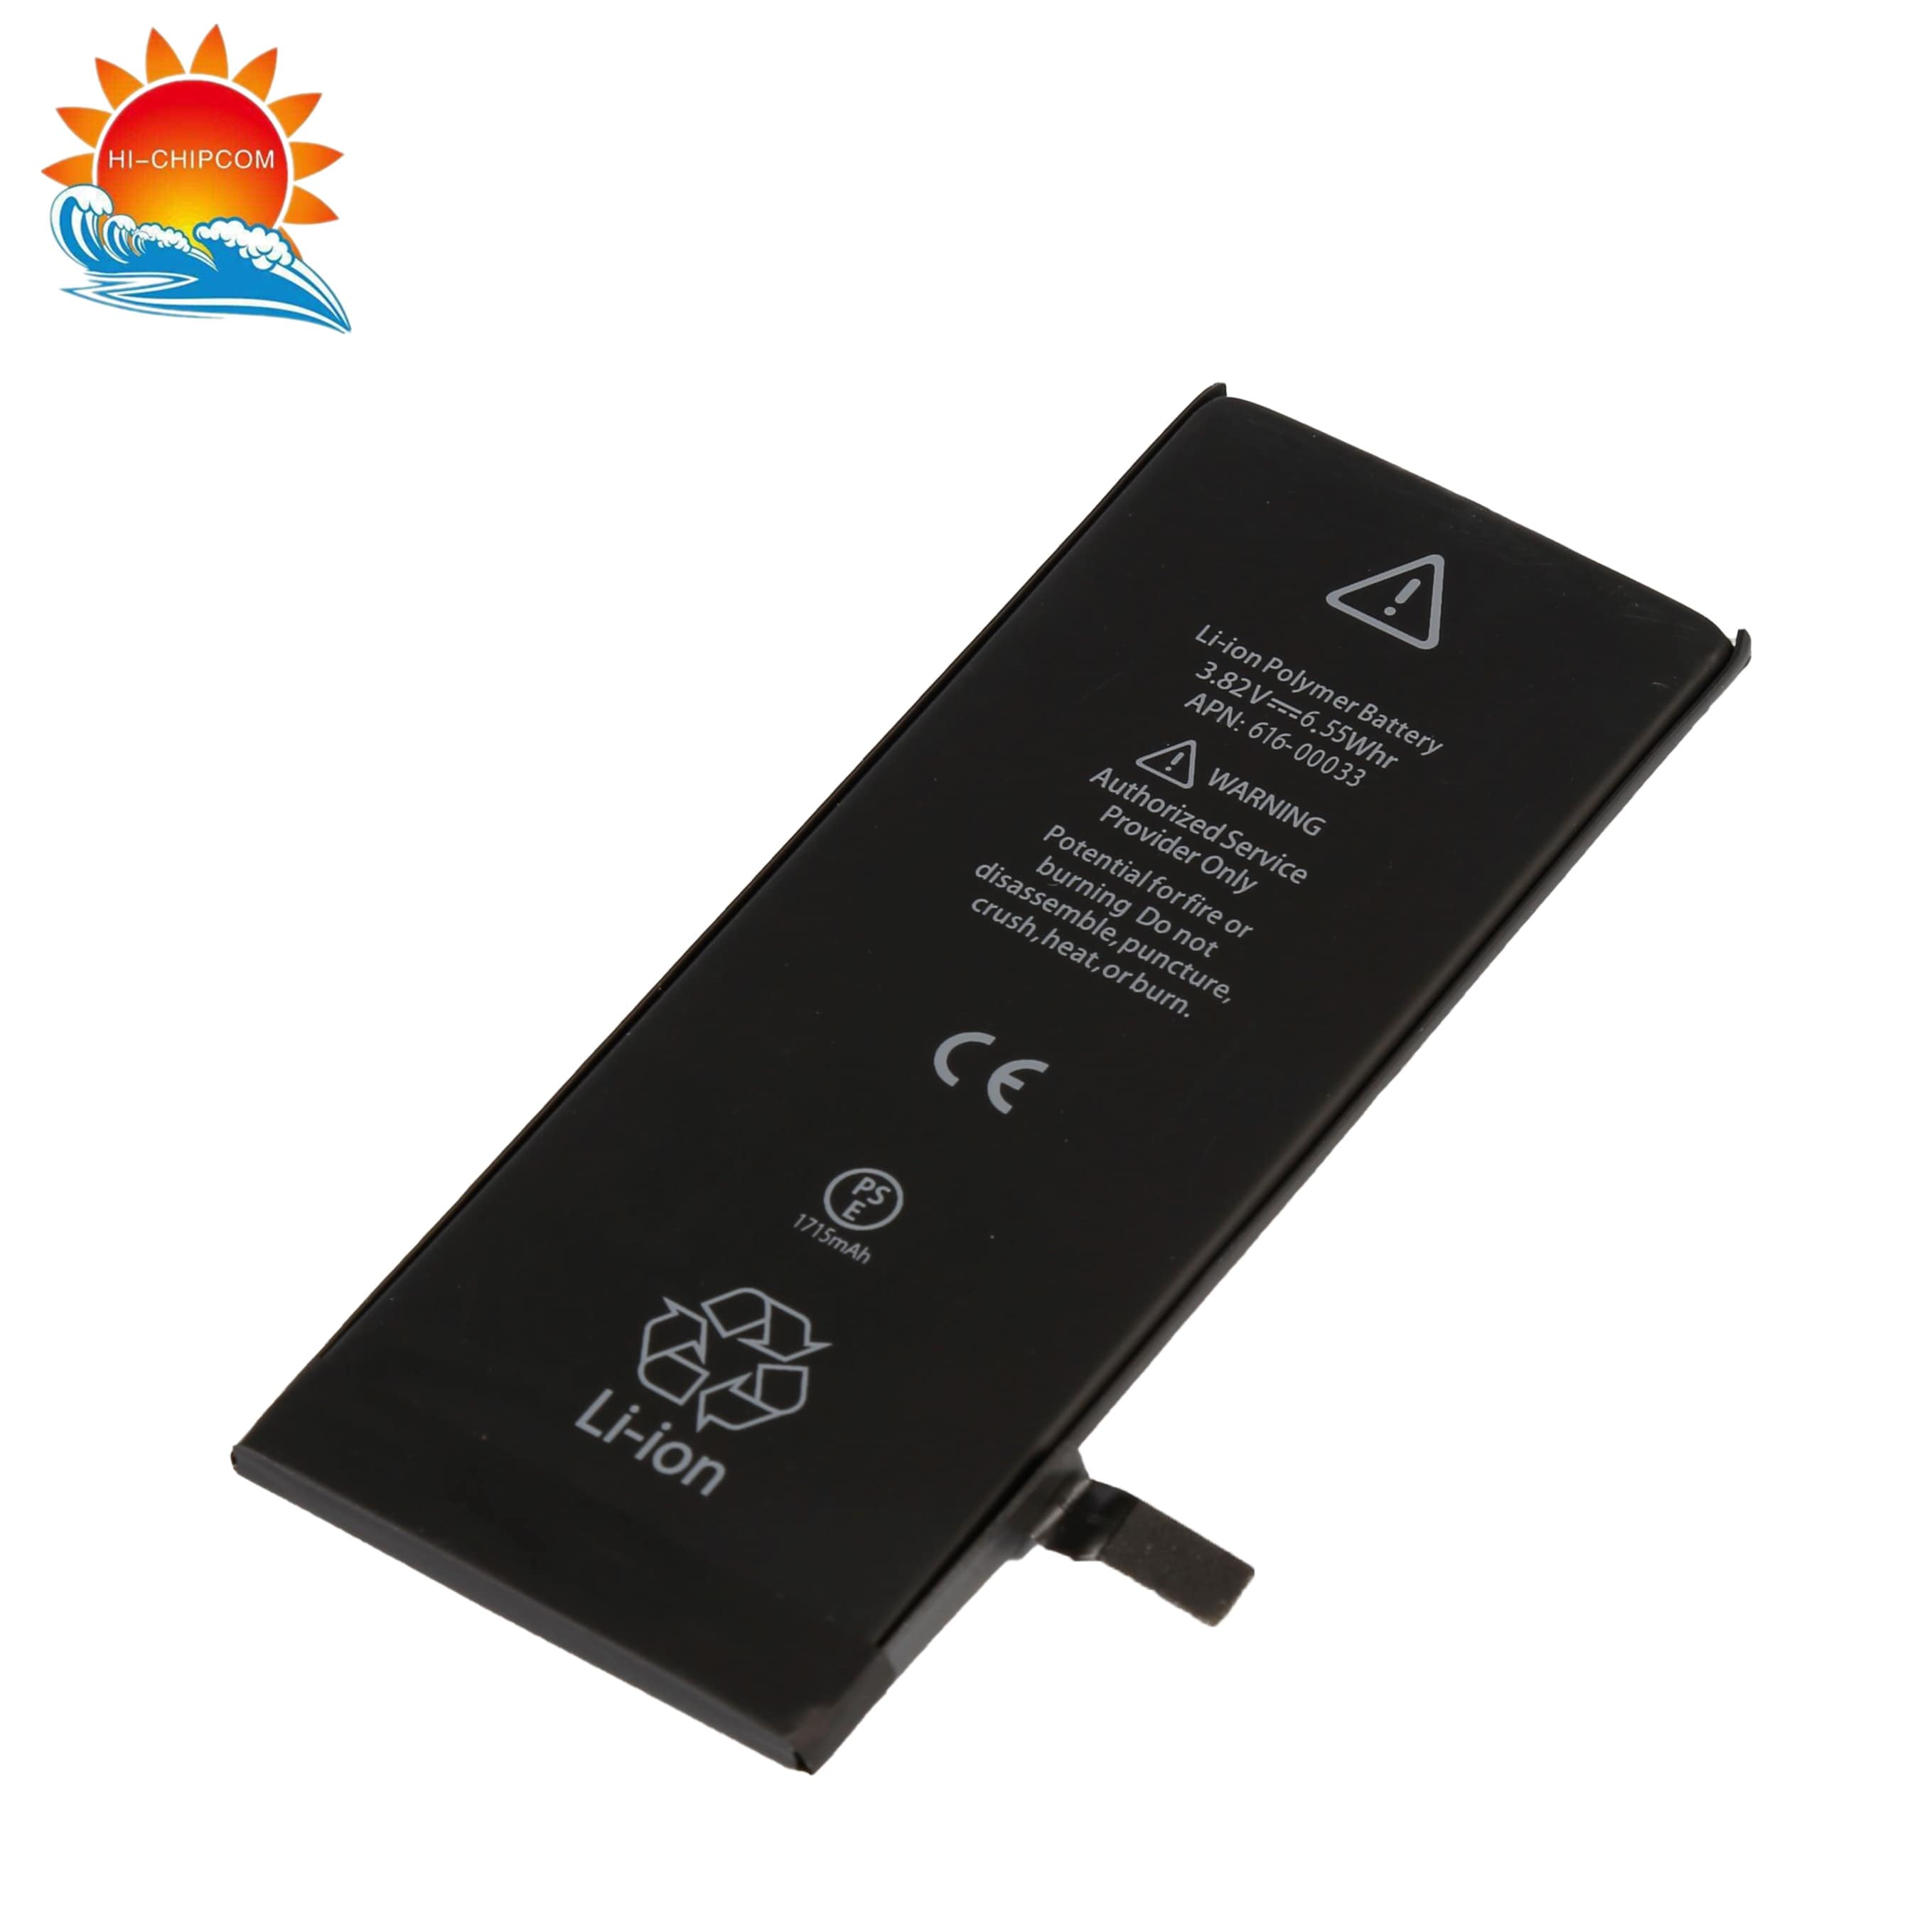 OEM Long Life iPhone 6s Battery